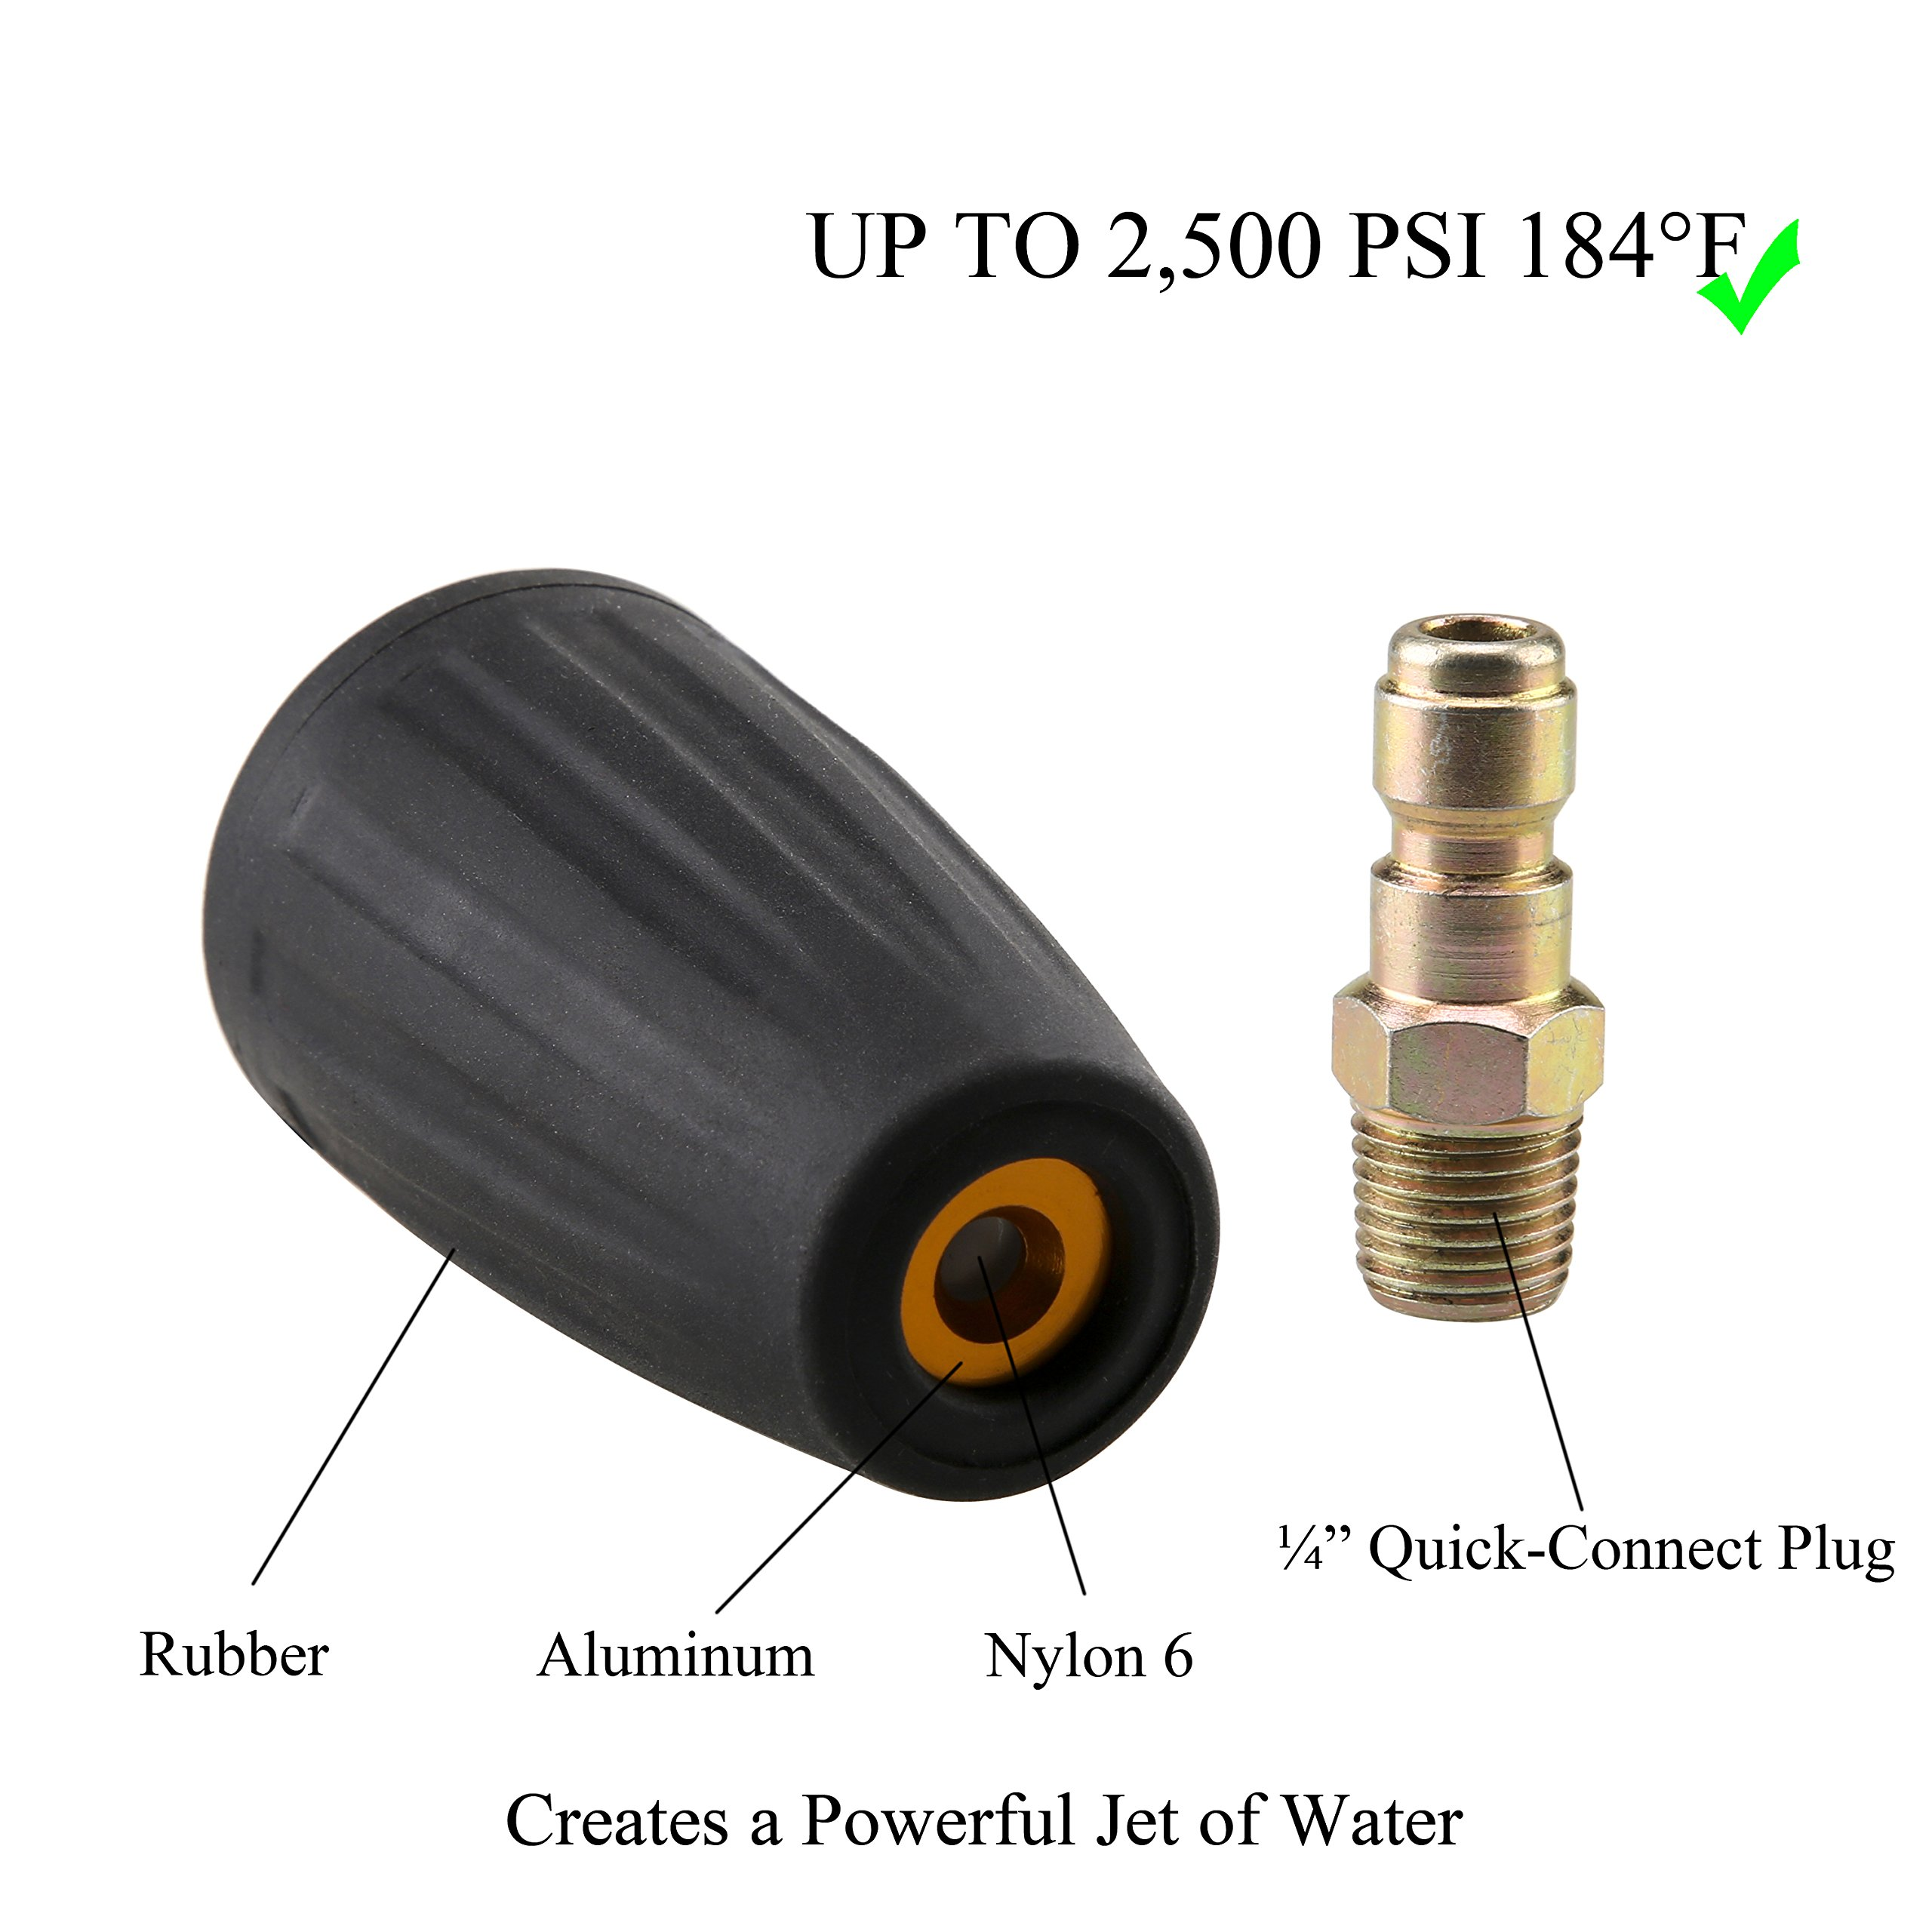 Tool Daily Quick Connect Turbo Spray Nozzle Universal for Cold Water Pressure Washers, 2500 PSI by Tool Daily (Image #3)